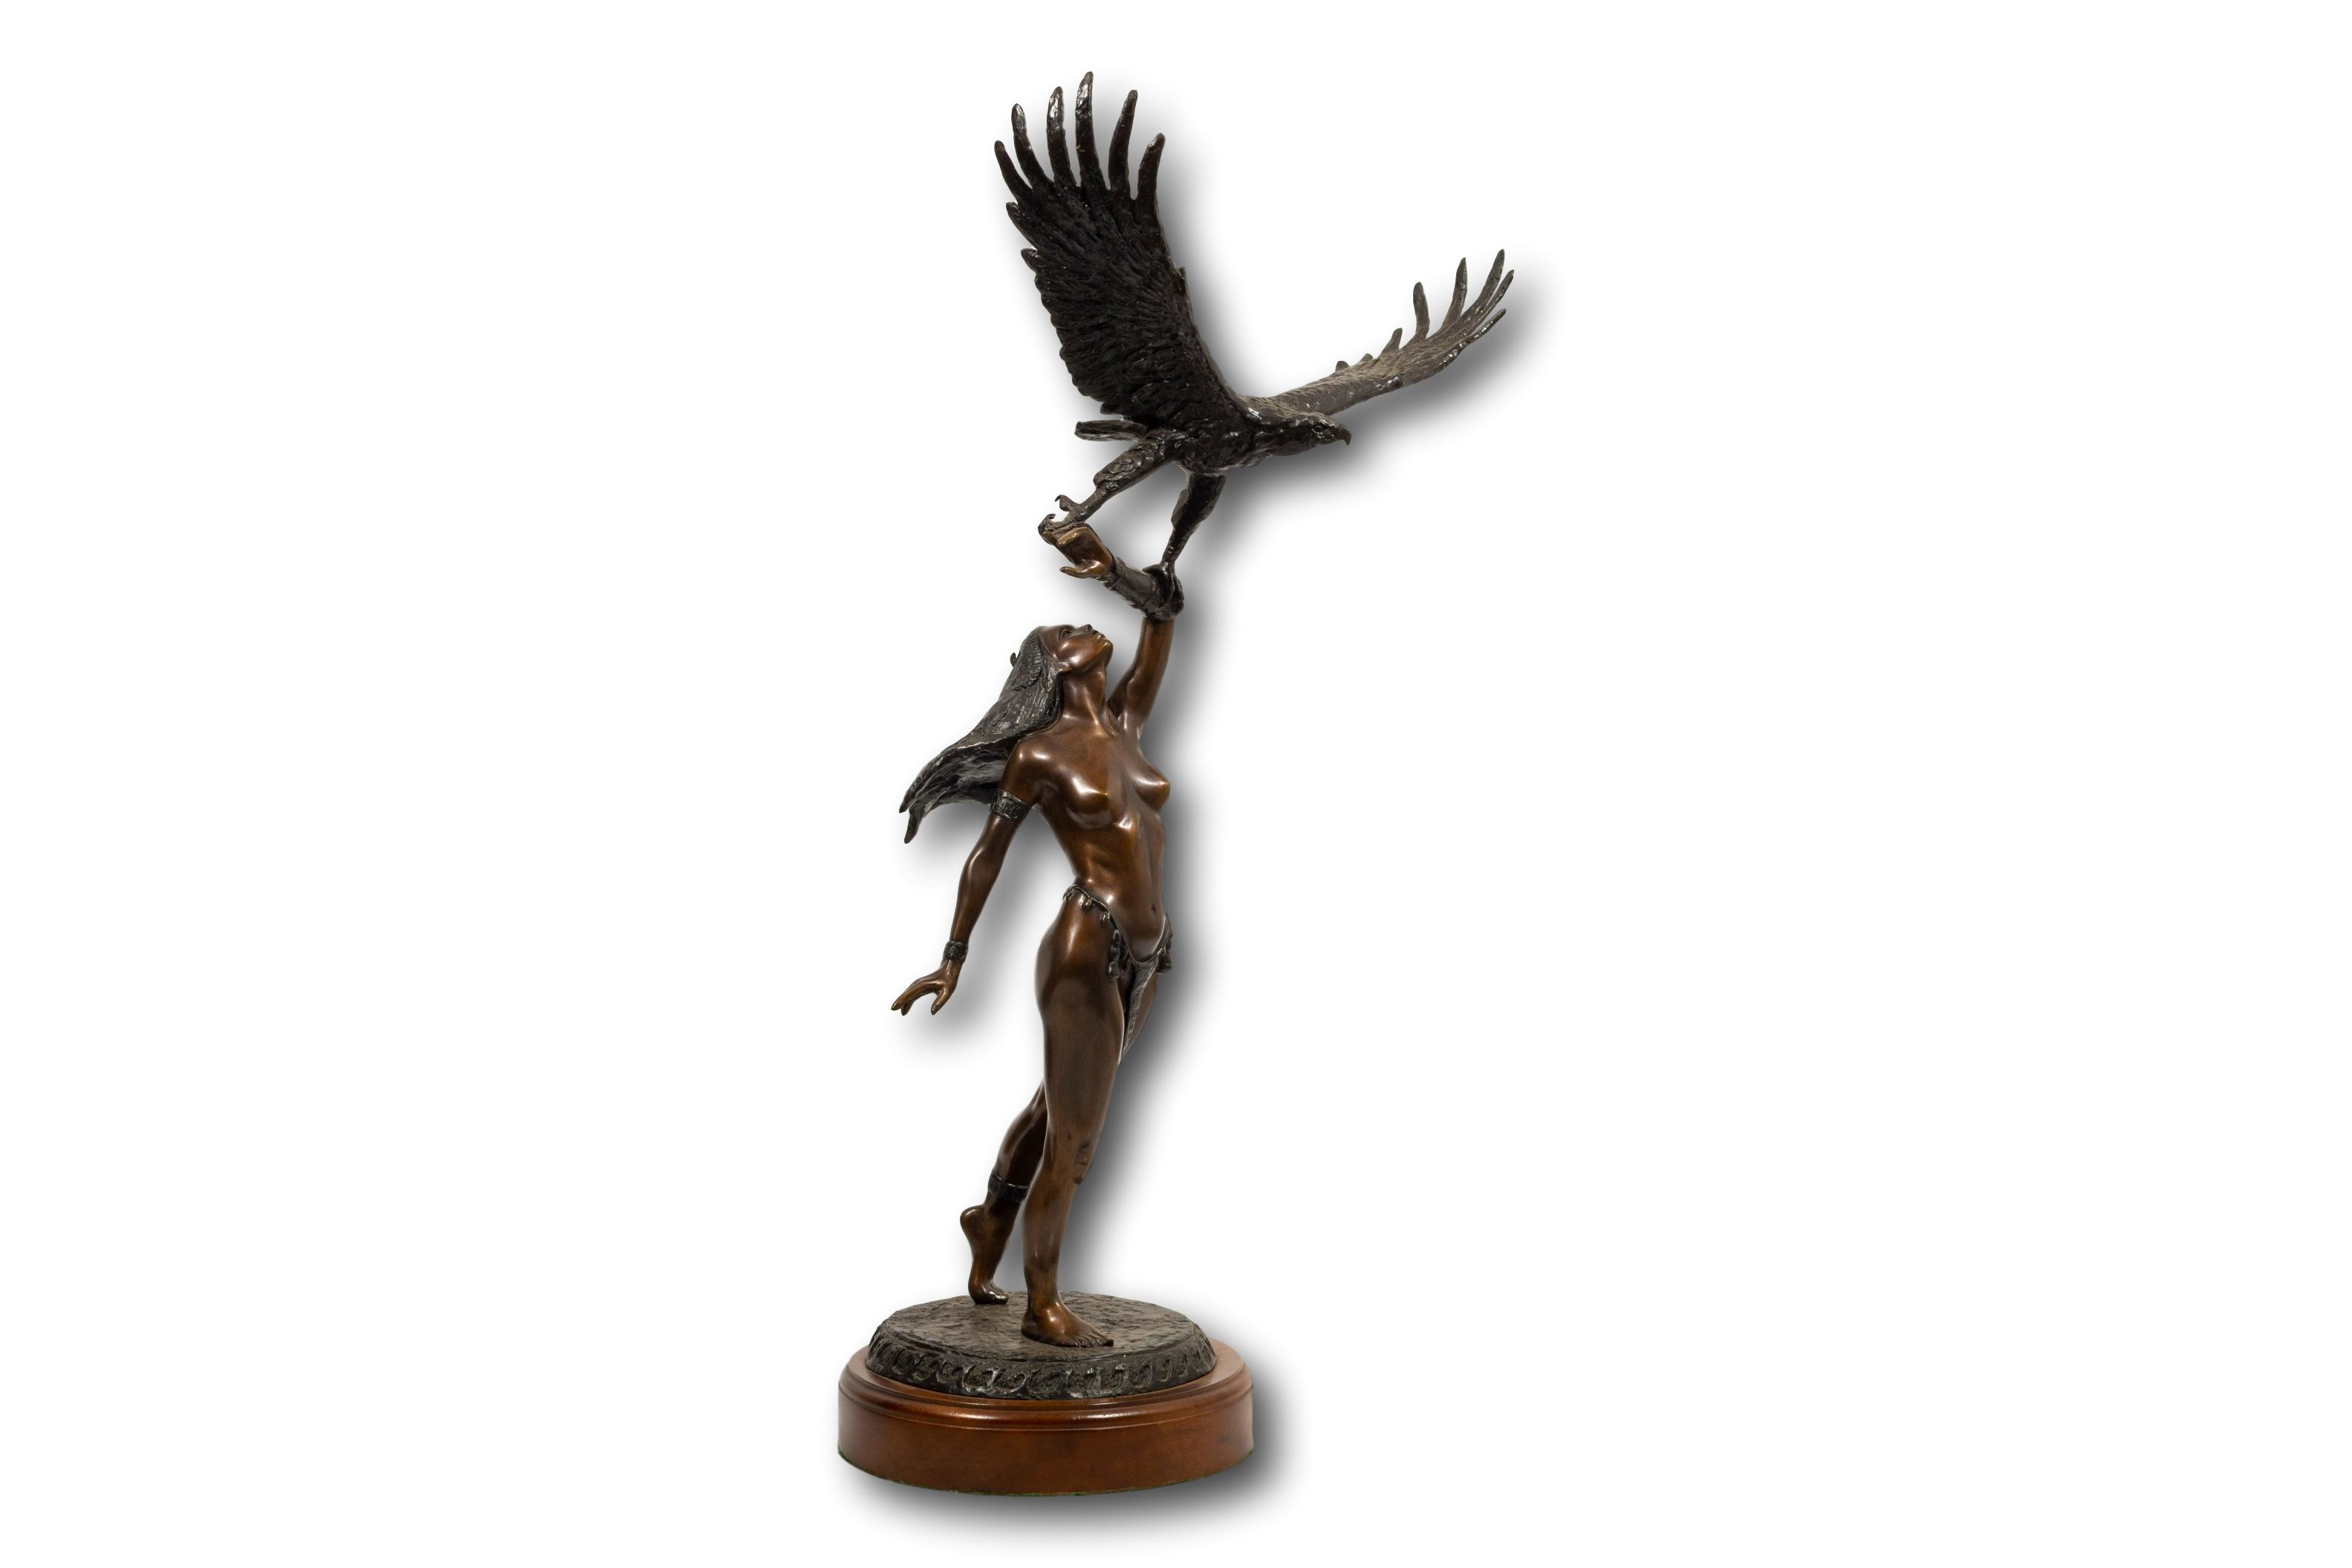 """Tienie Pritchard (SA, born 1938) Bronze, """"Gift of Flight"""", Signed & Numbered 10/15, 71cm including base"""